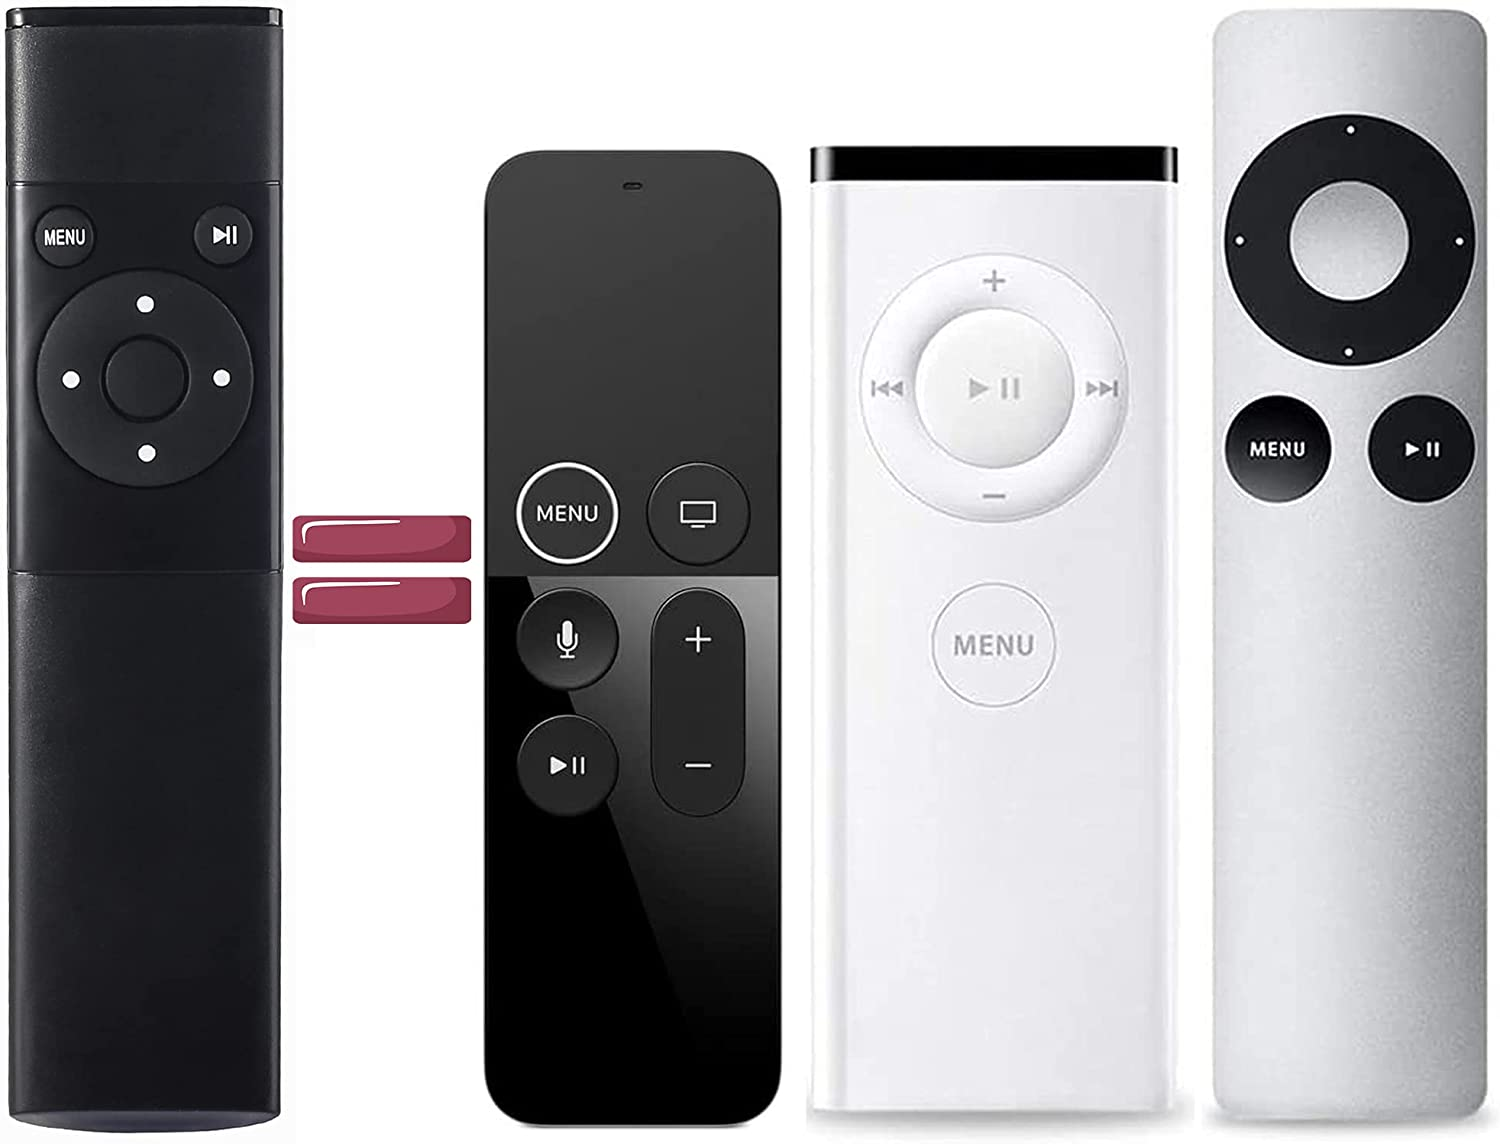 New Infrared Remote Control MC377LL/A for Apple 2/3 TV Box A1294 A1156, for Apple TV4 4K A1962 A1842/MQD22/MP7P2 A1469 A1427/MD199 A1378/MC572 A1218/MA711 MM4T2AM/A A1625/MGY52/MLNC2 Mac Music System